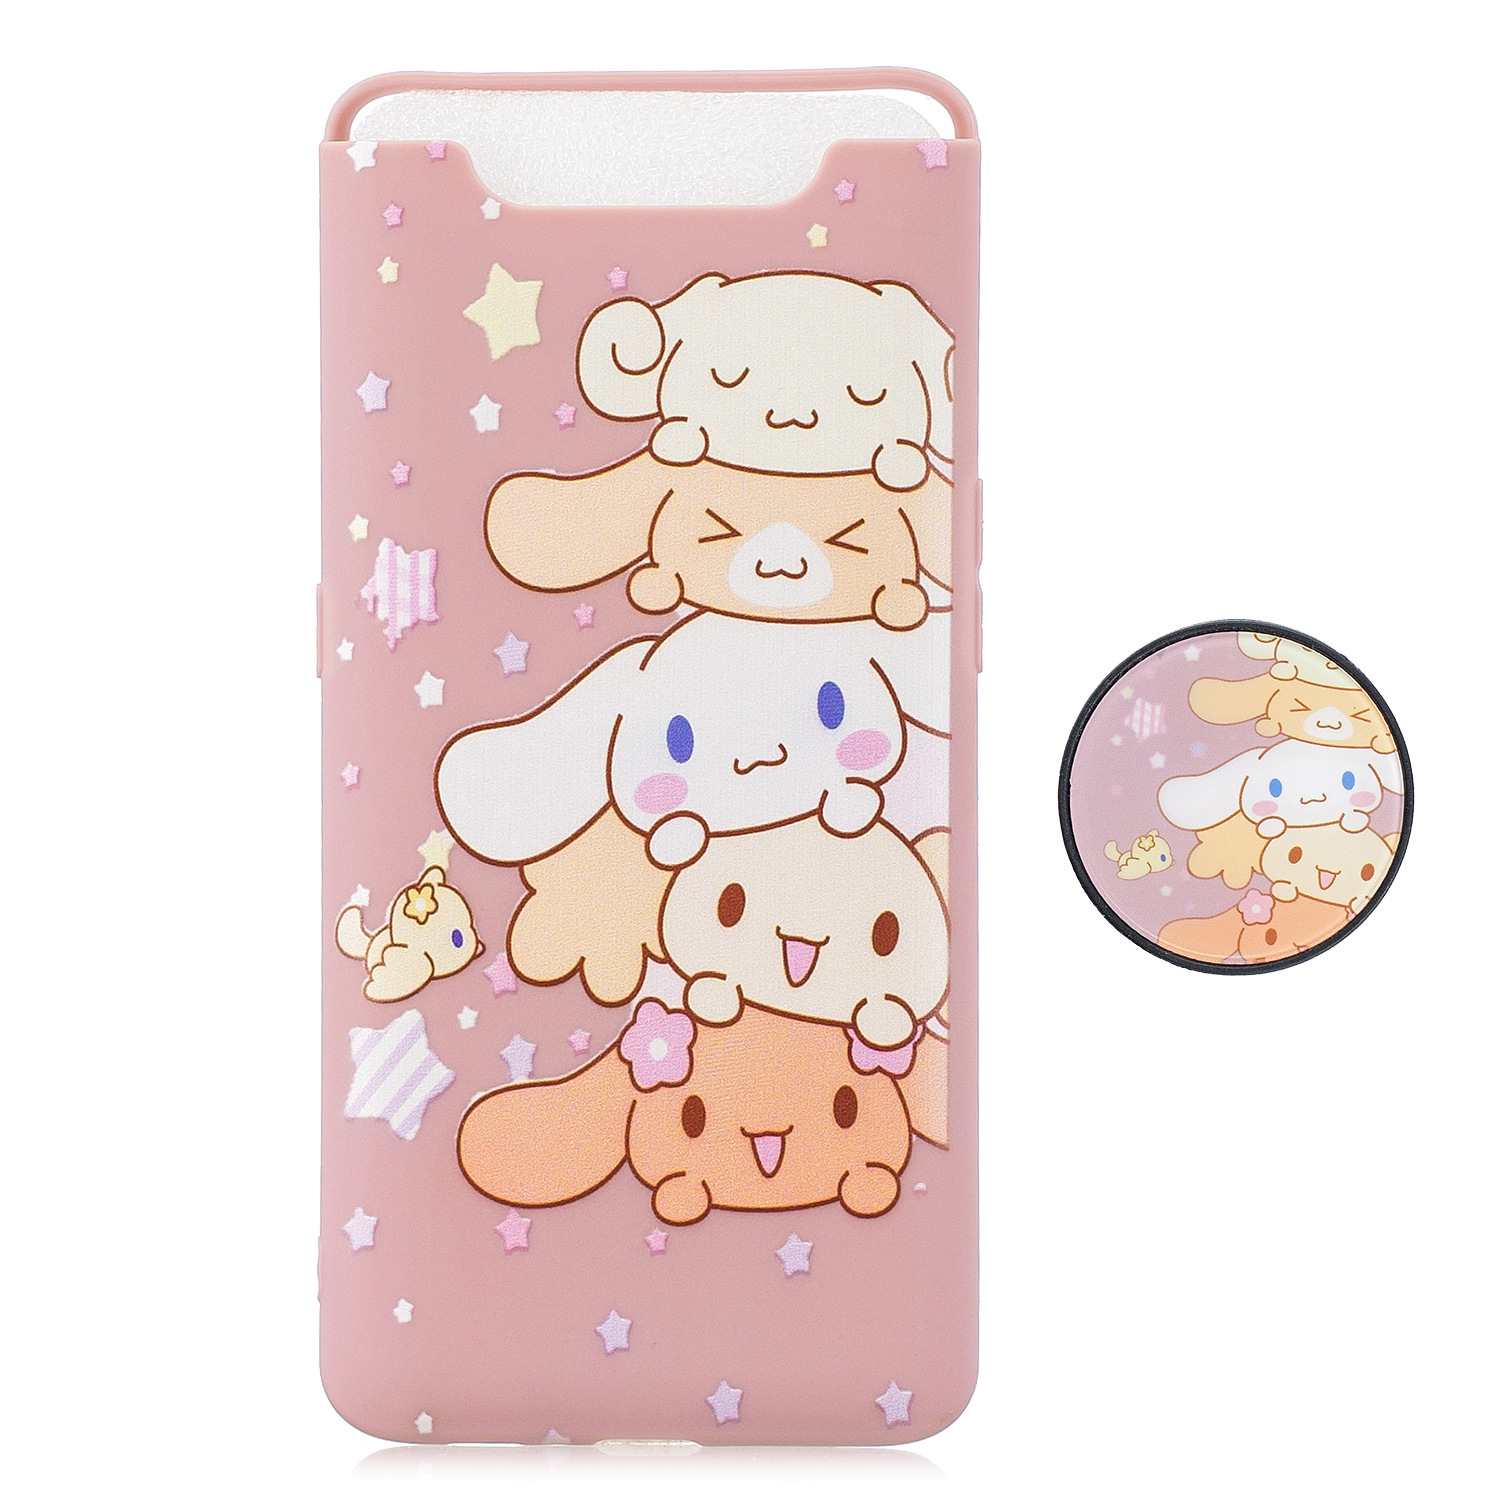 For Samsung A80 Screen Protective Shockproof TPU Full Phone Cover Cartoon Phone Case Full Body Protection Mobile Phone Case with Adjustable Bracket 1